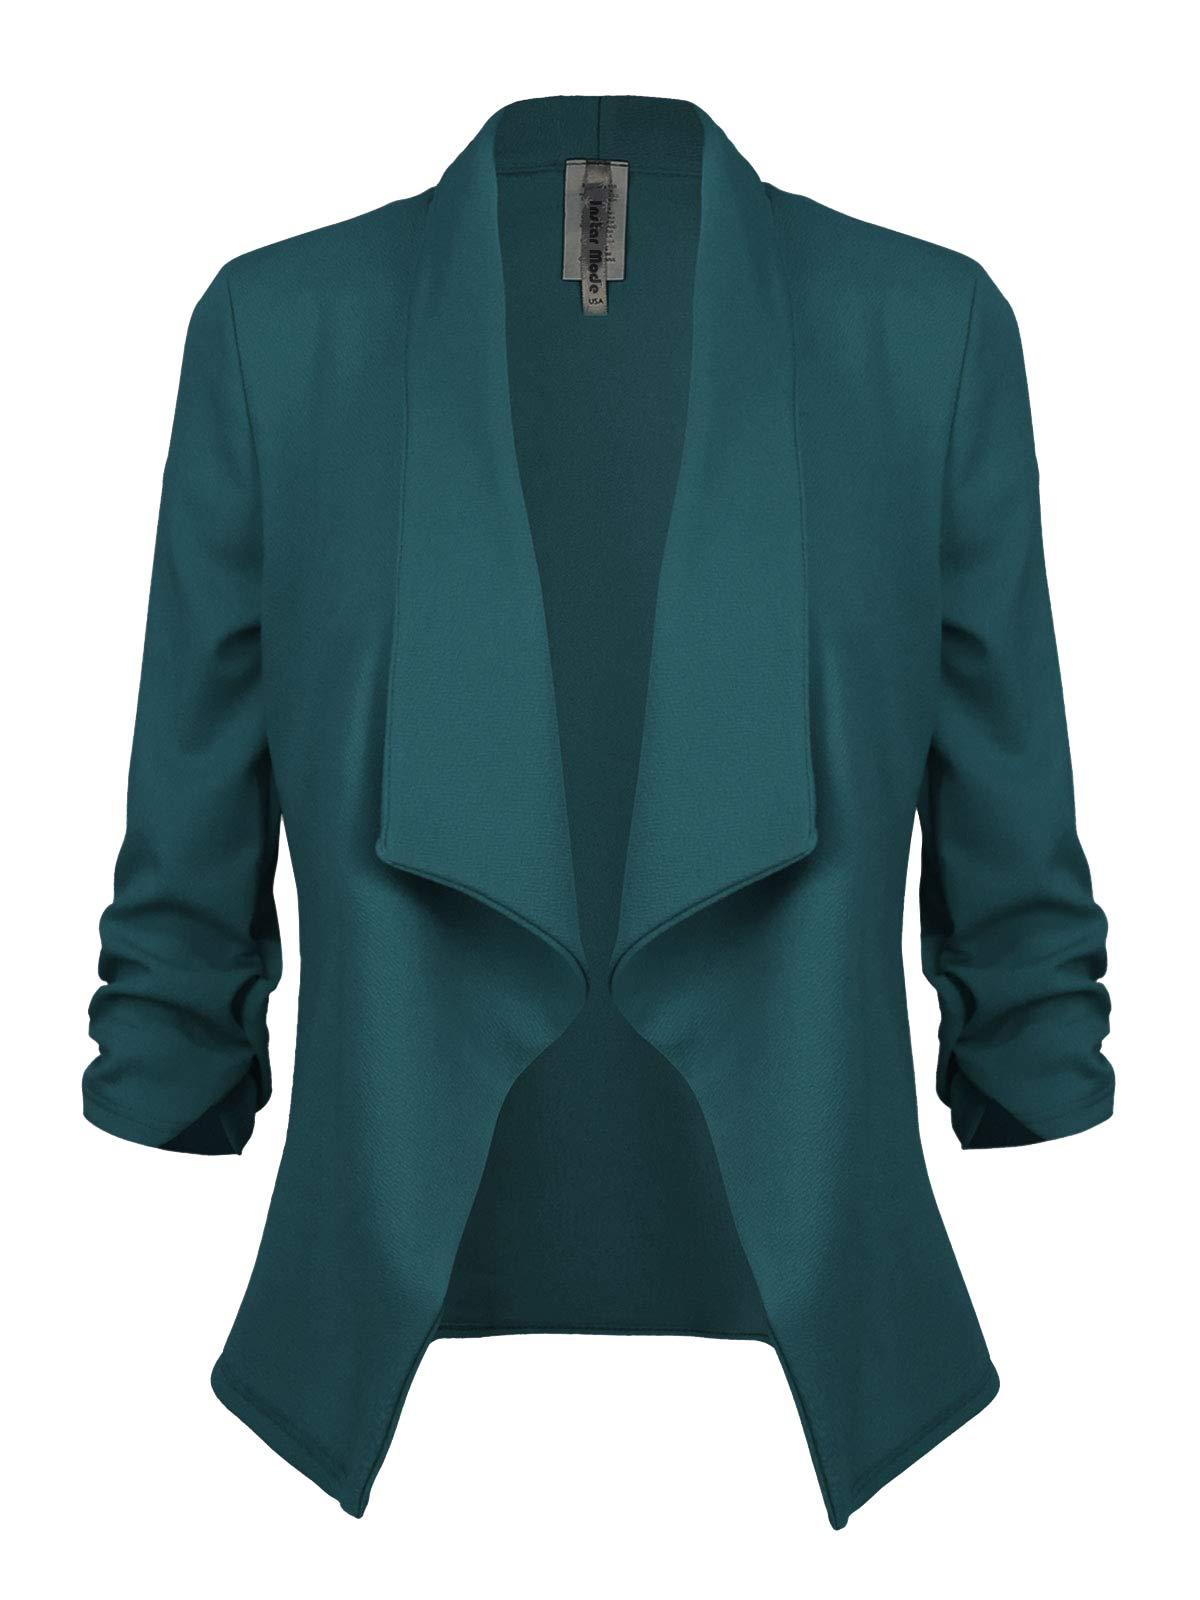 Instar Mode Women's Classic 3/4 Sleeve Open Front Blazer Jacket [S-3X] -Made in USA Hunter Green M